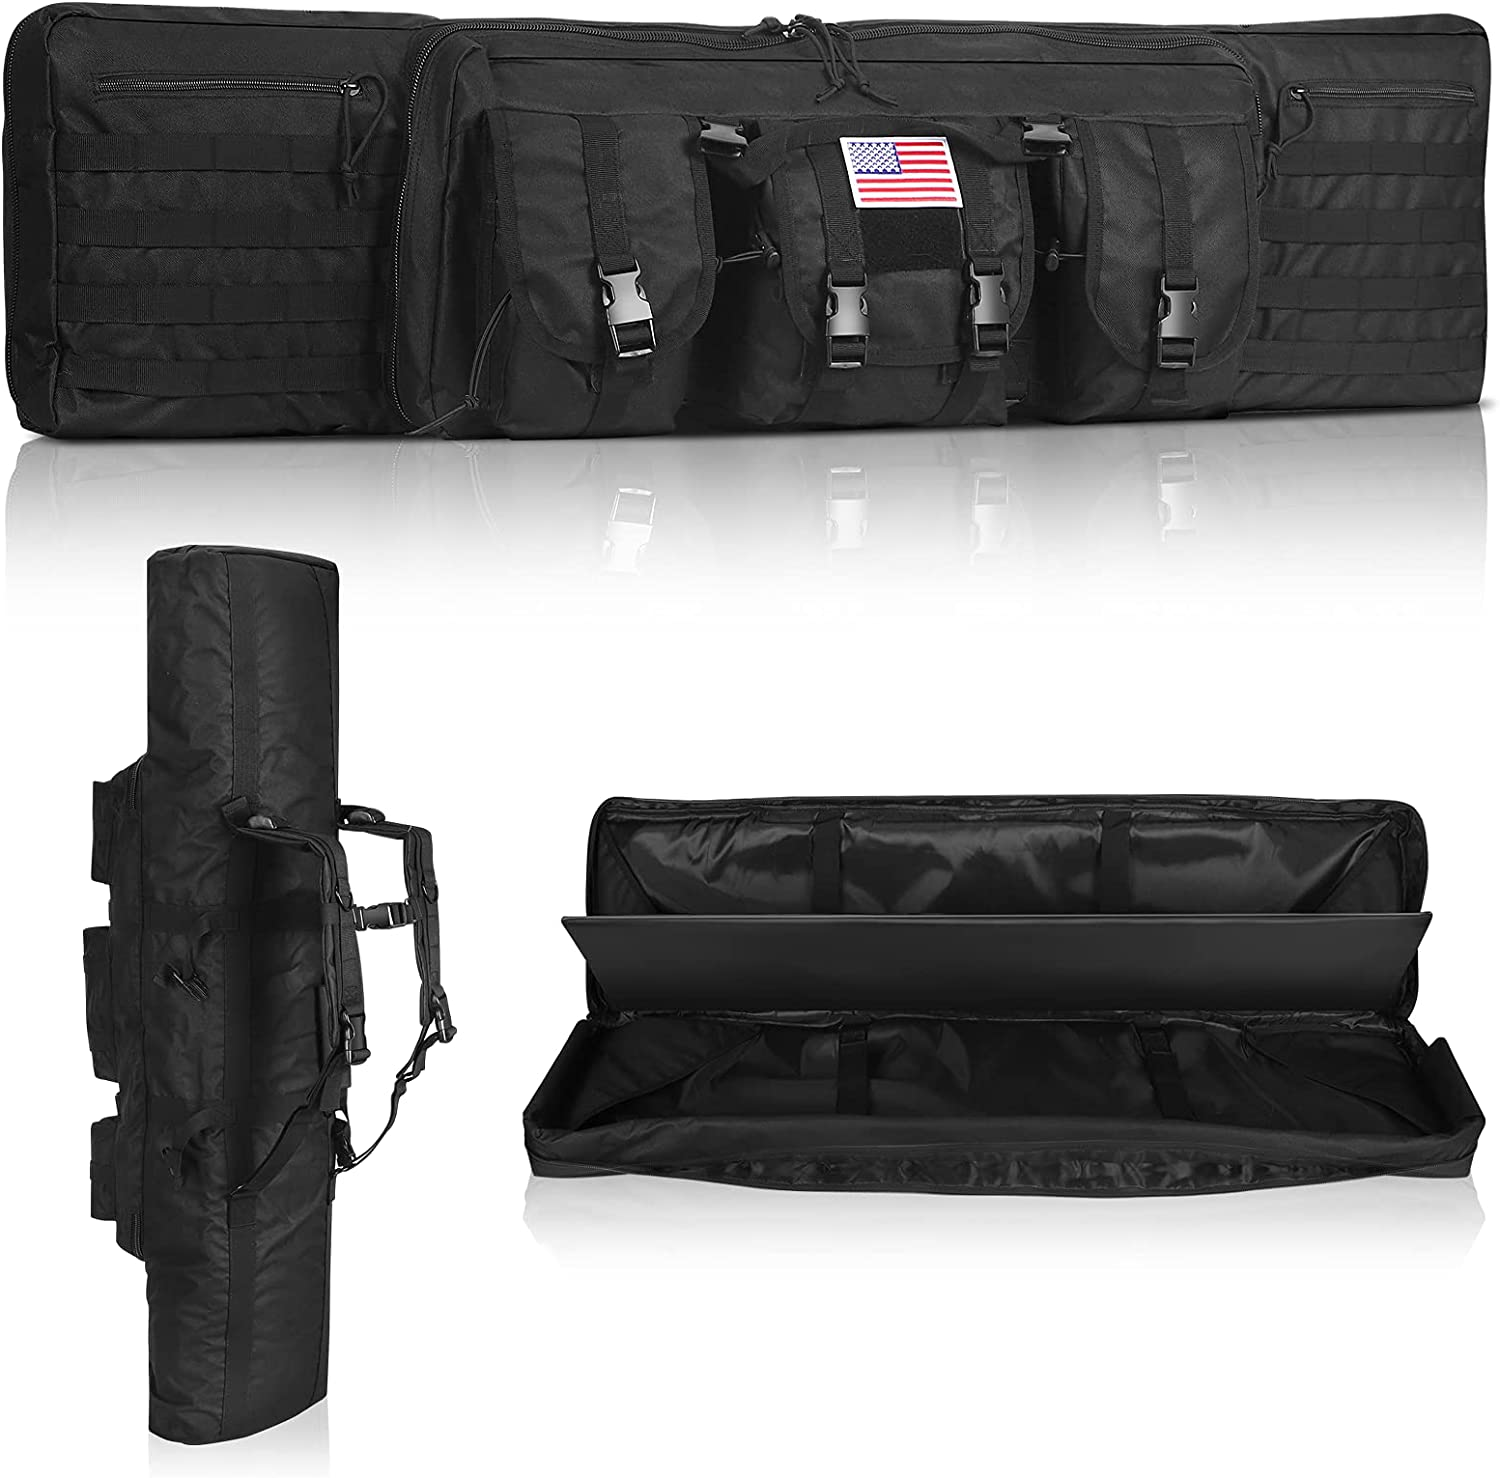 Loncaka Soft Rifle Case Tactical SALENEW very popular Ourdoor Classic Double Max 69% OFF